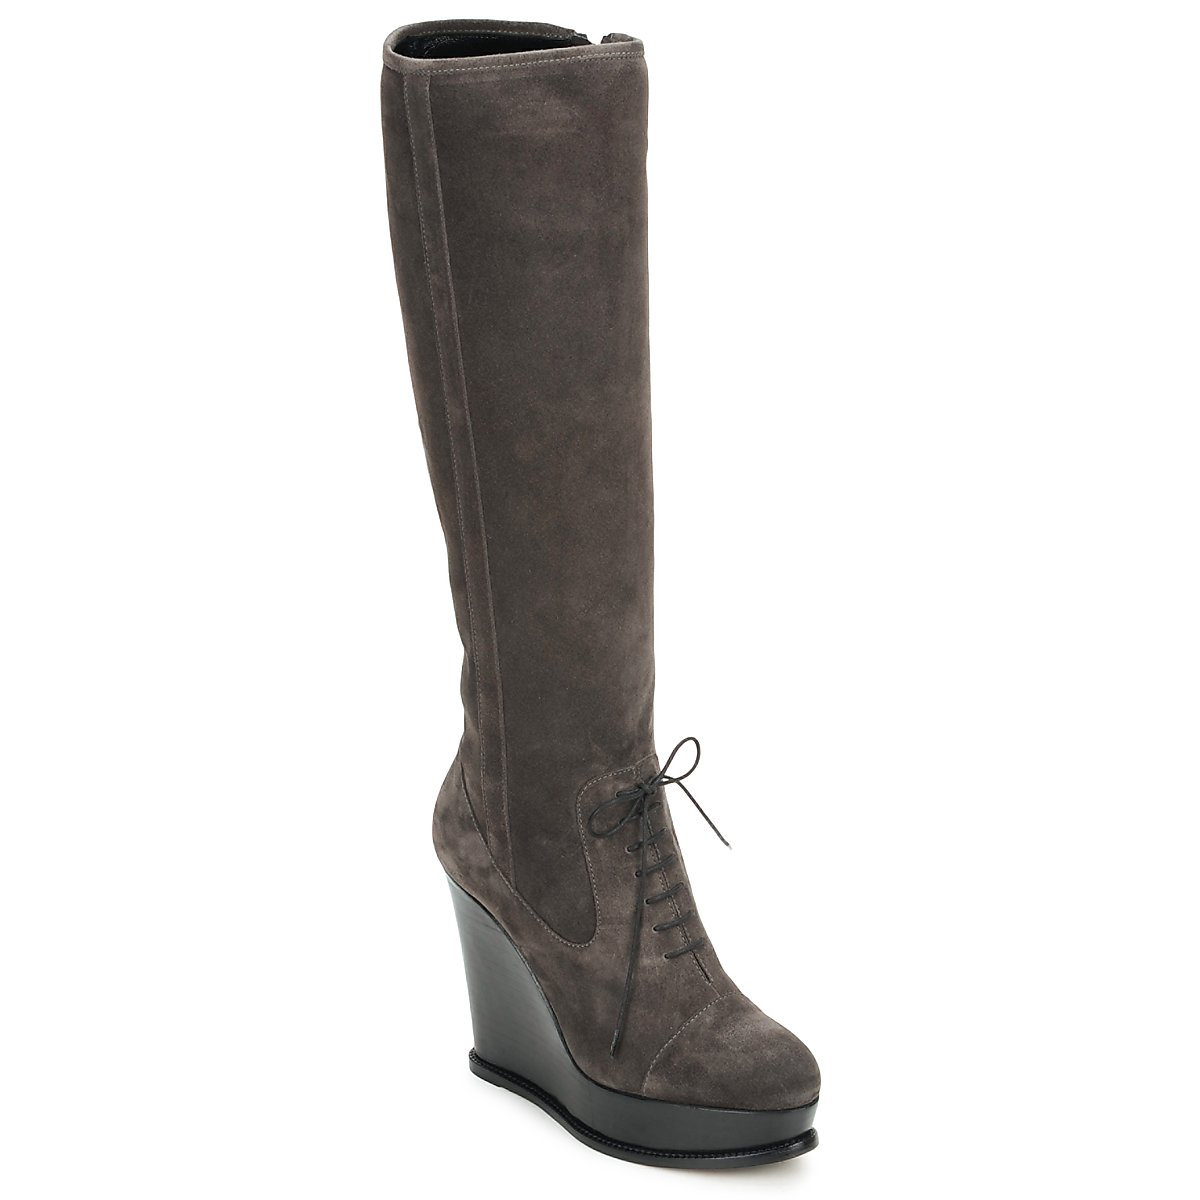 Botte ville Moschino Cheap & CHIC CA2603 Taupe